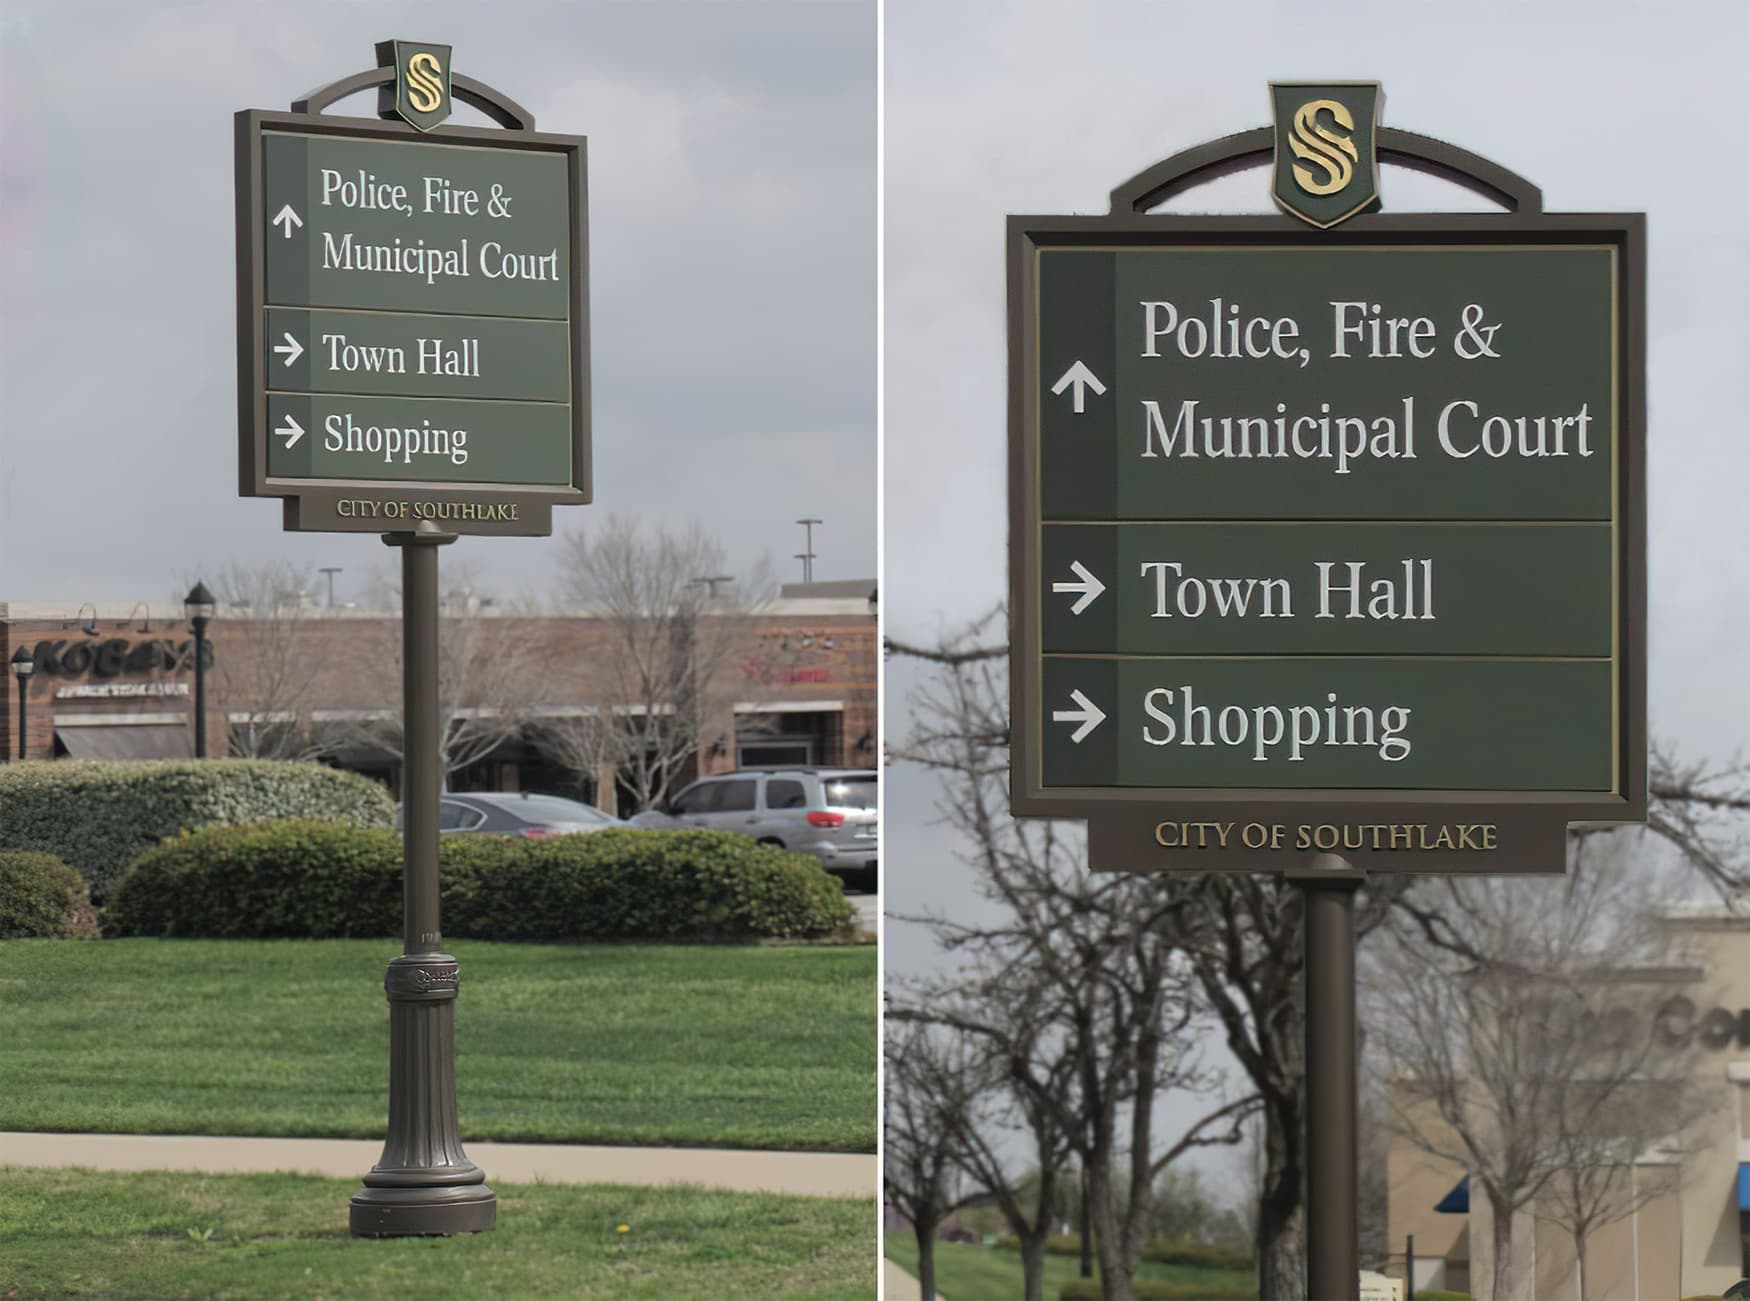 RSM Design worked with The City of Southlake to develop wayfinding signage around the city. Civic Design. Vehicular Wayfinding Design.